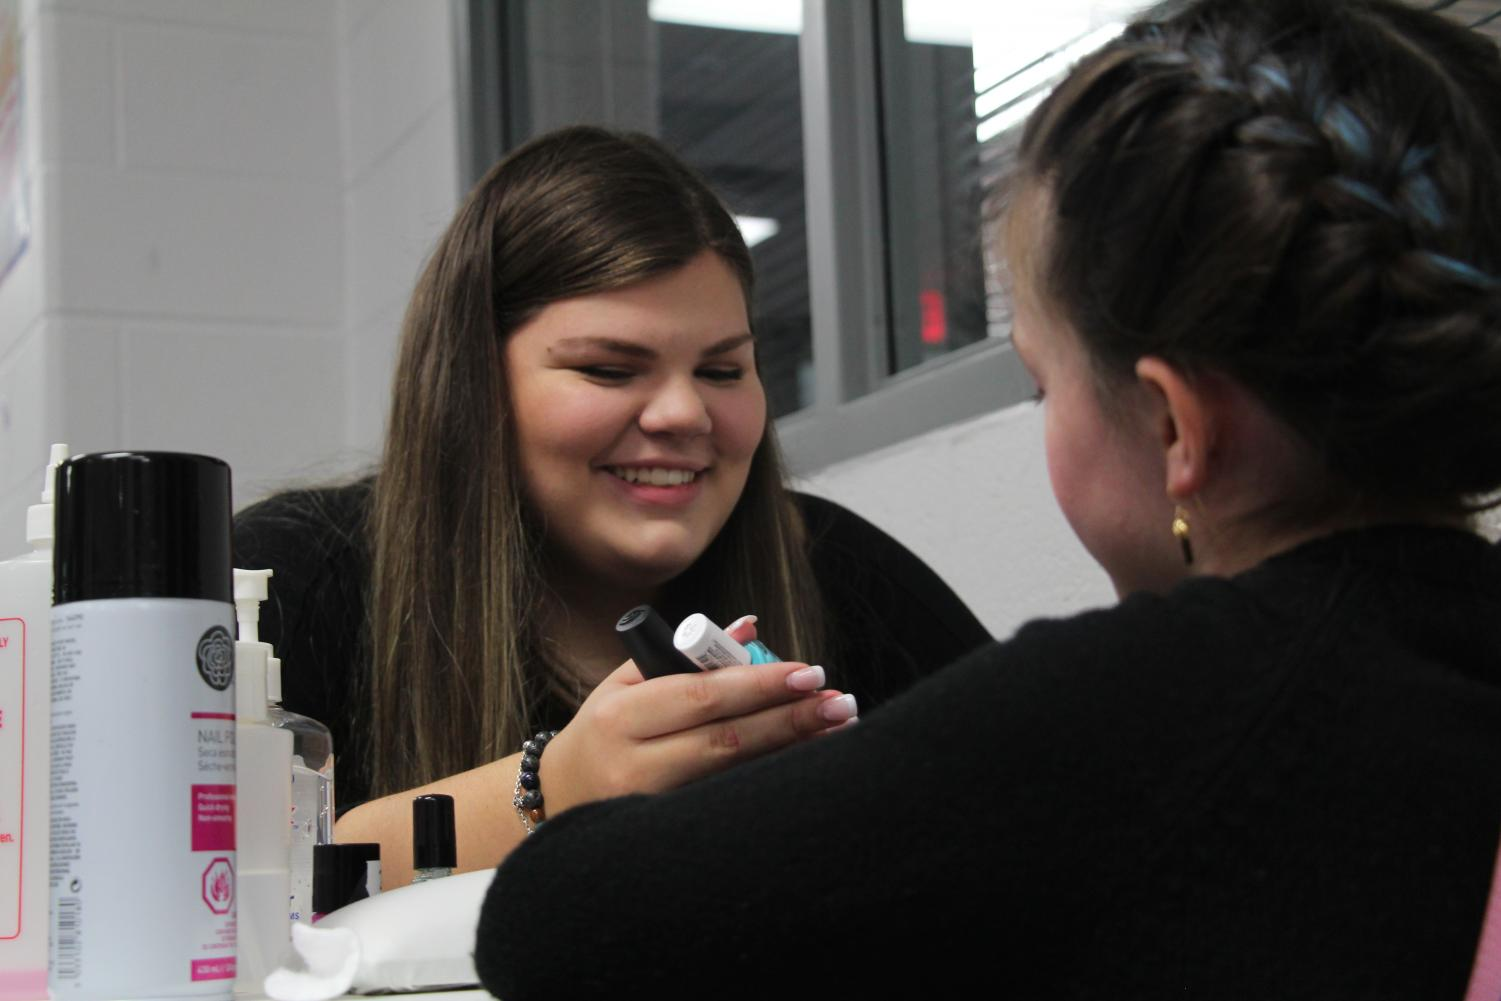 Lois Hill works on her nail art in class.